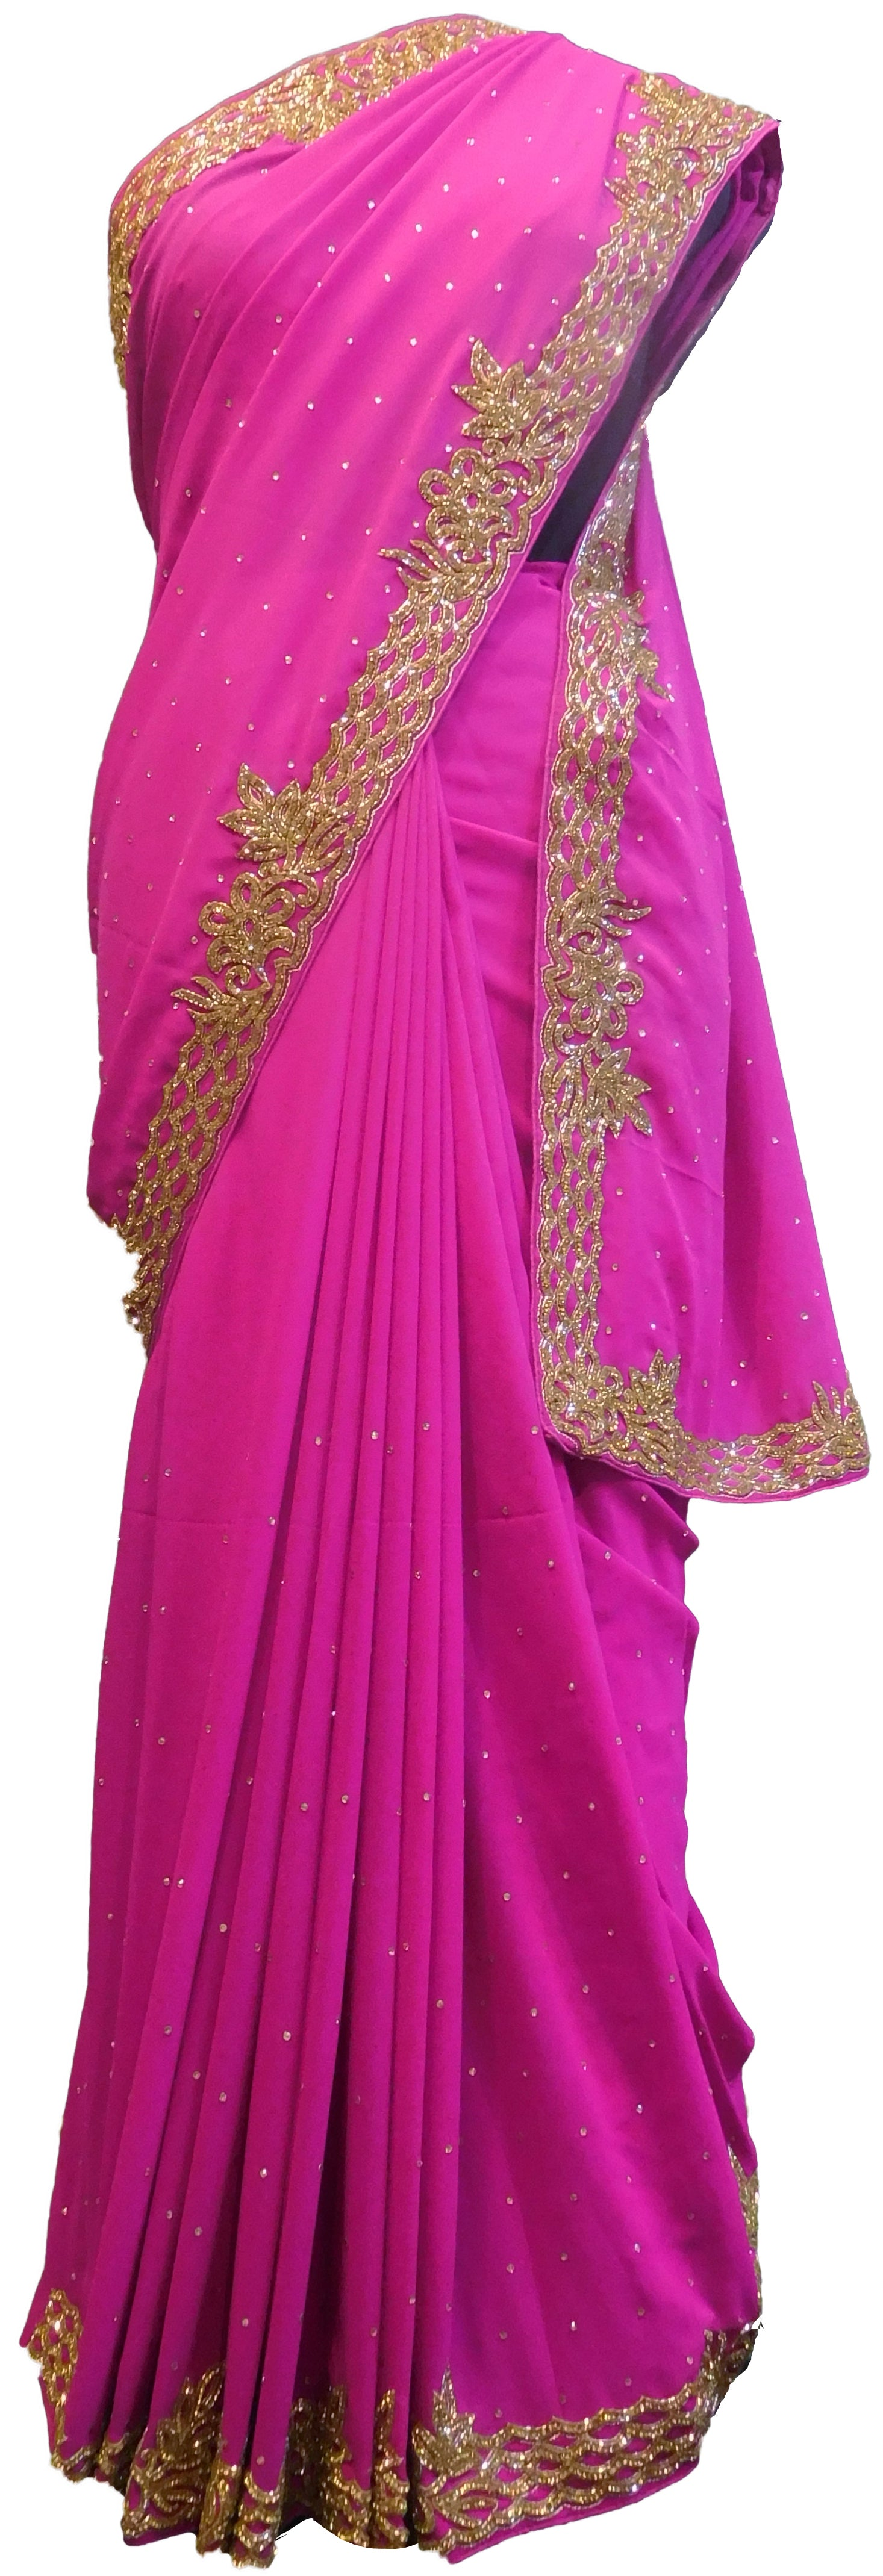 SMSAREE Pink Designer Wedding Partywear Georgette Cutdana & Stone  Hand Embroidery Work Bridal Saree Sari With Blouse Piece E524